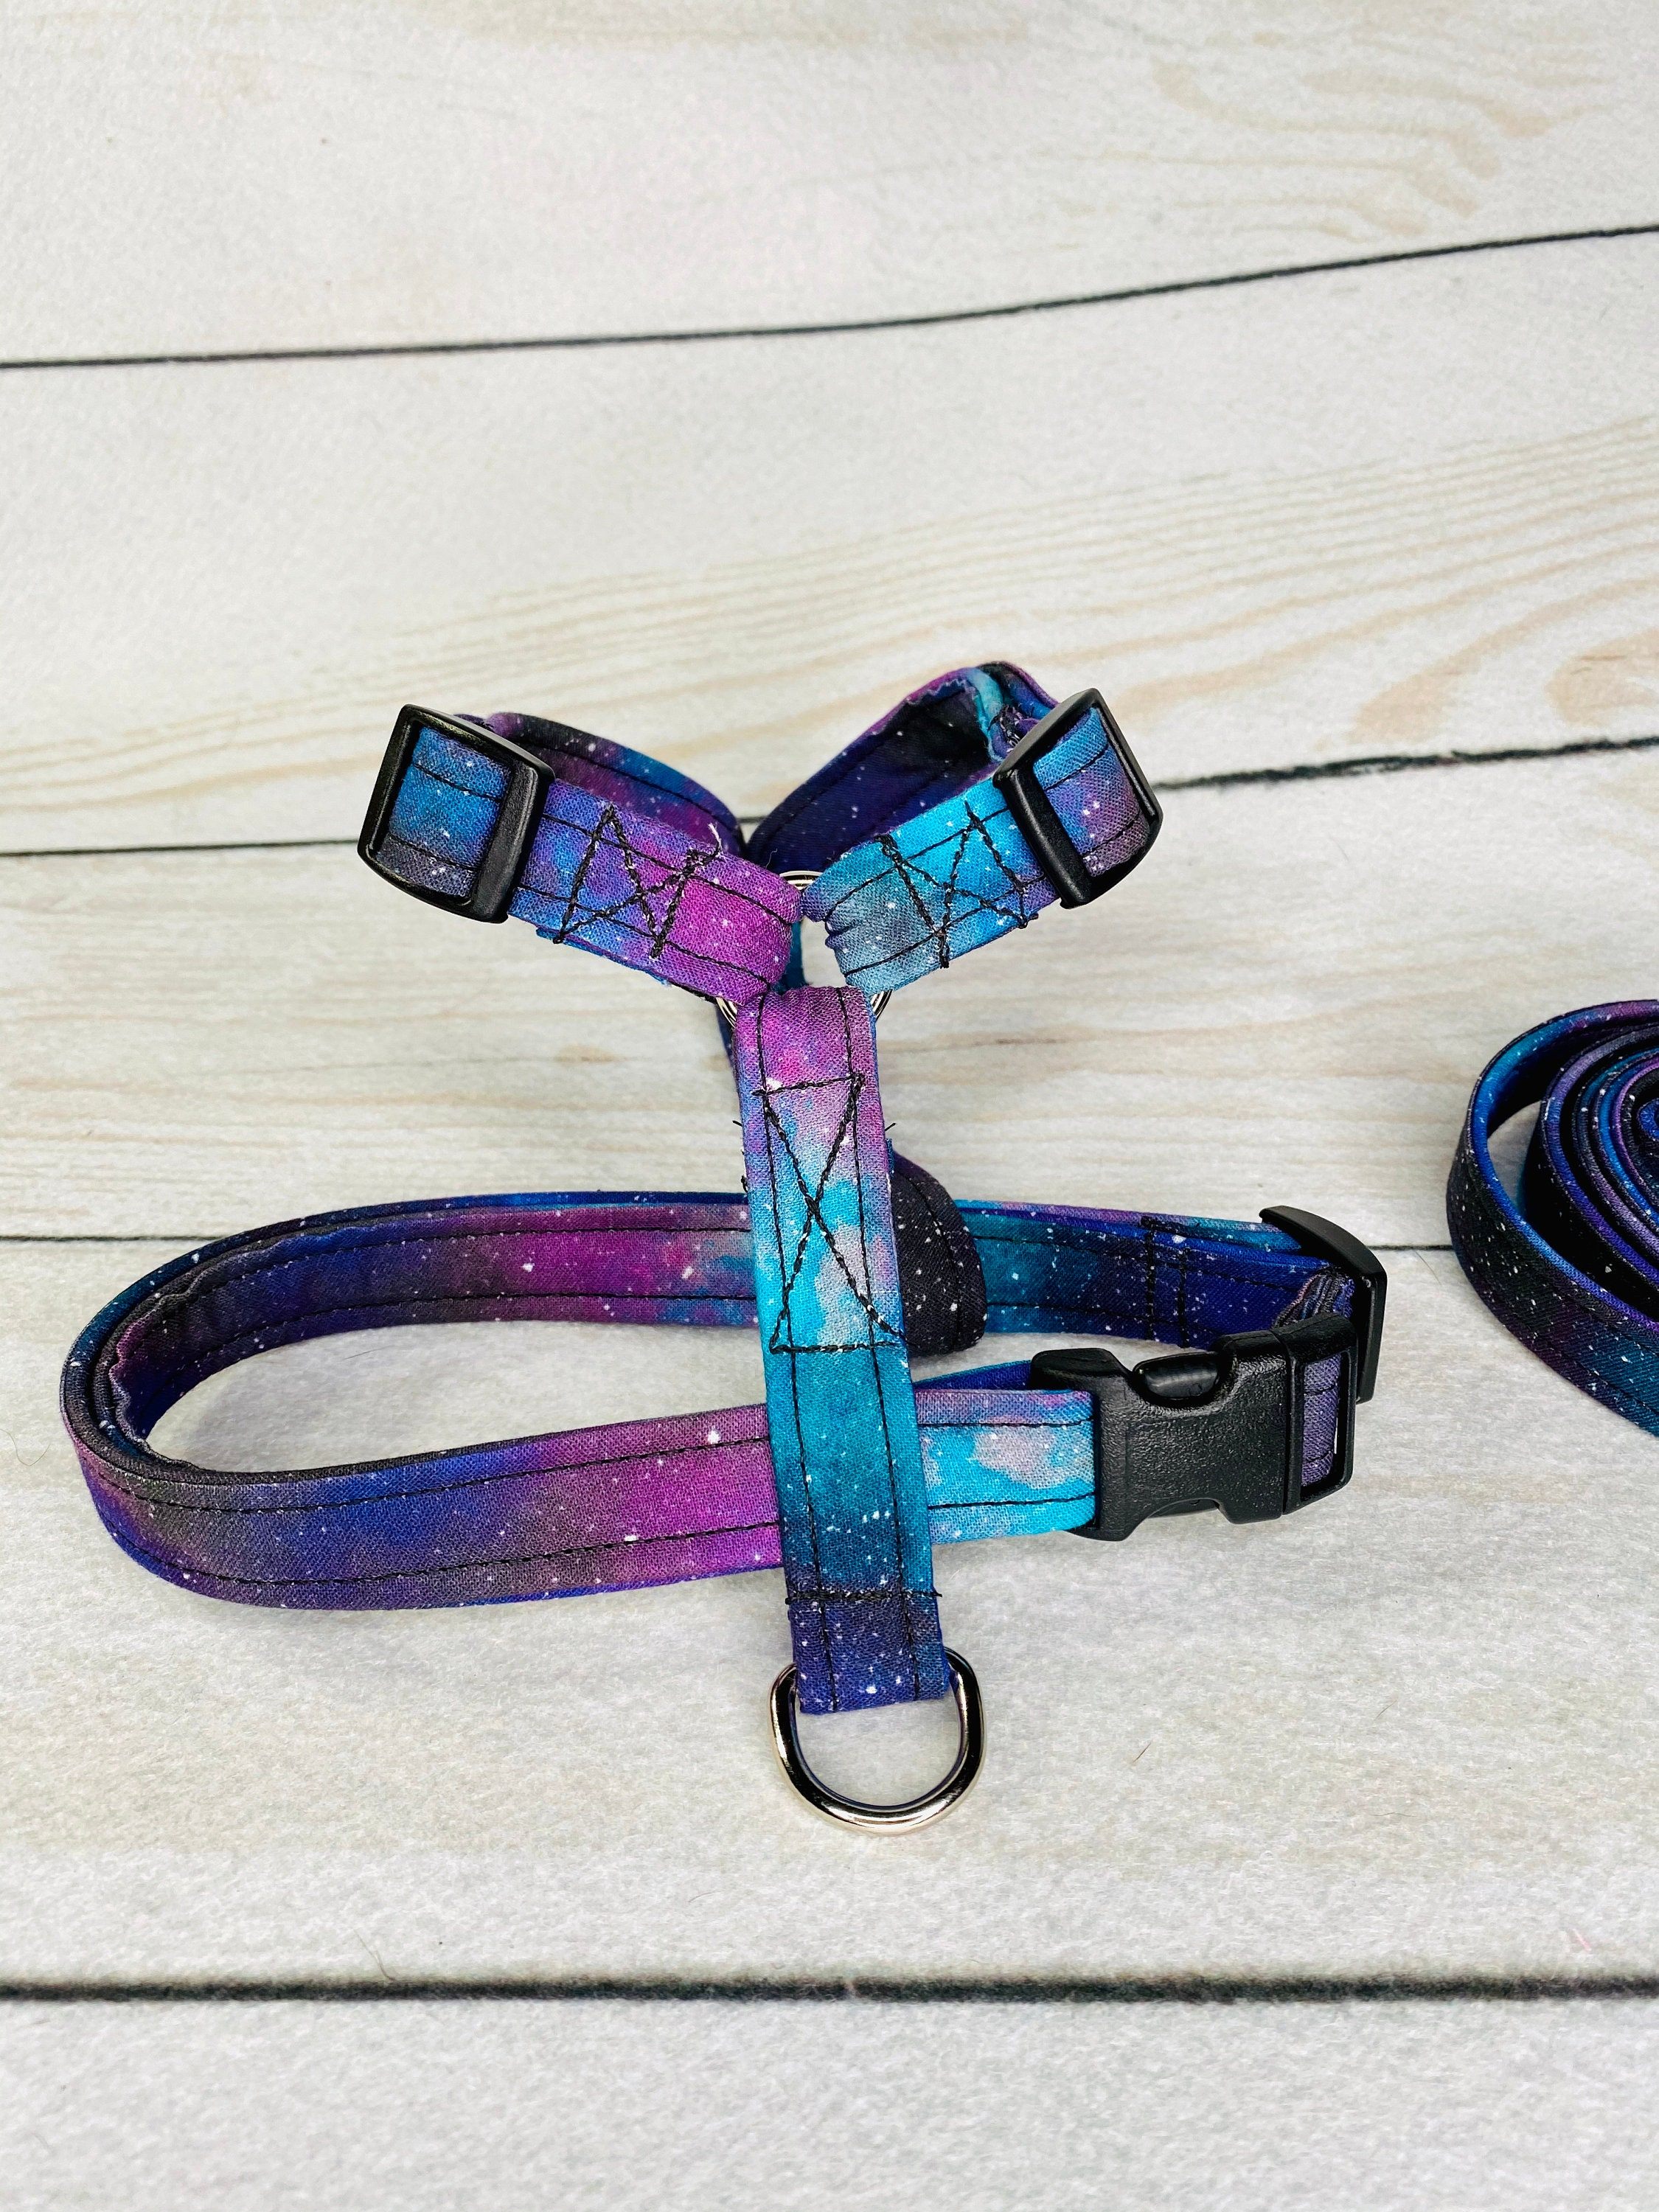 Dog Harness  Harness And Leash  Step In Harness  Standard